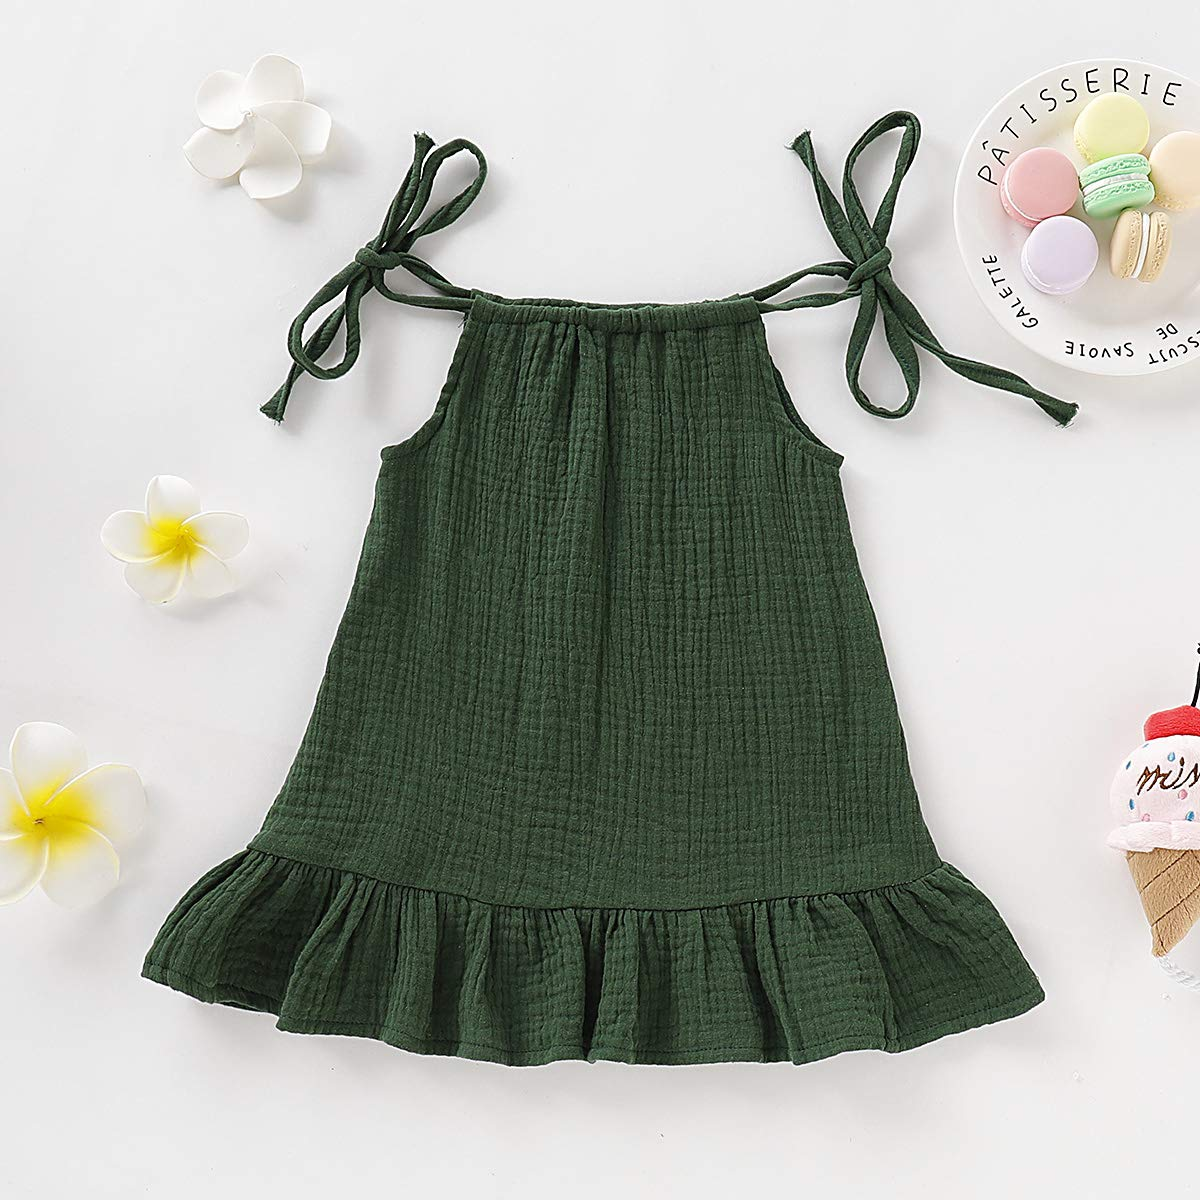 YOUNGER TREE Toddler Baby Girls Solid Color Sling Dress String Bowkonwt Sleeveless Dress Skirt Outfits Clothes Summer